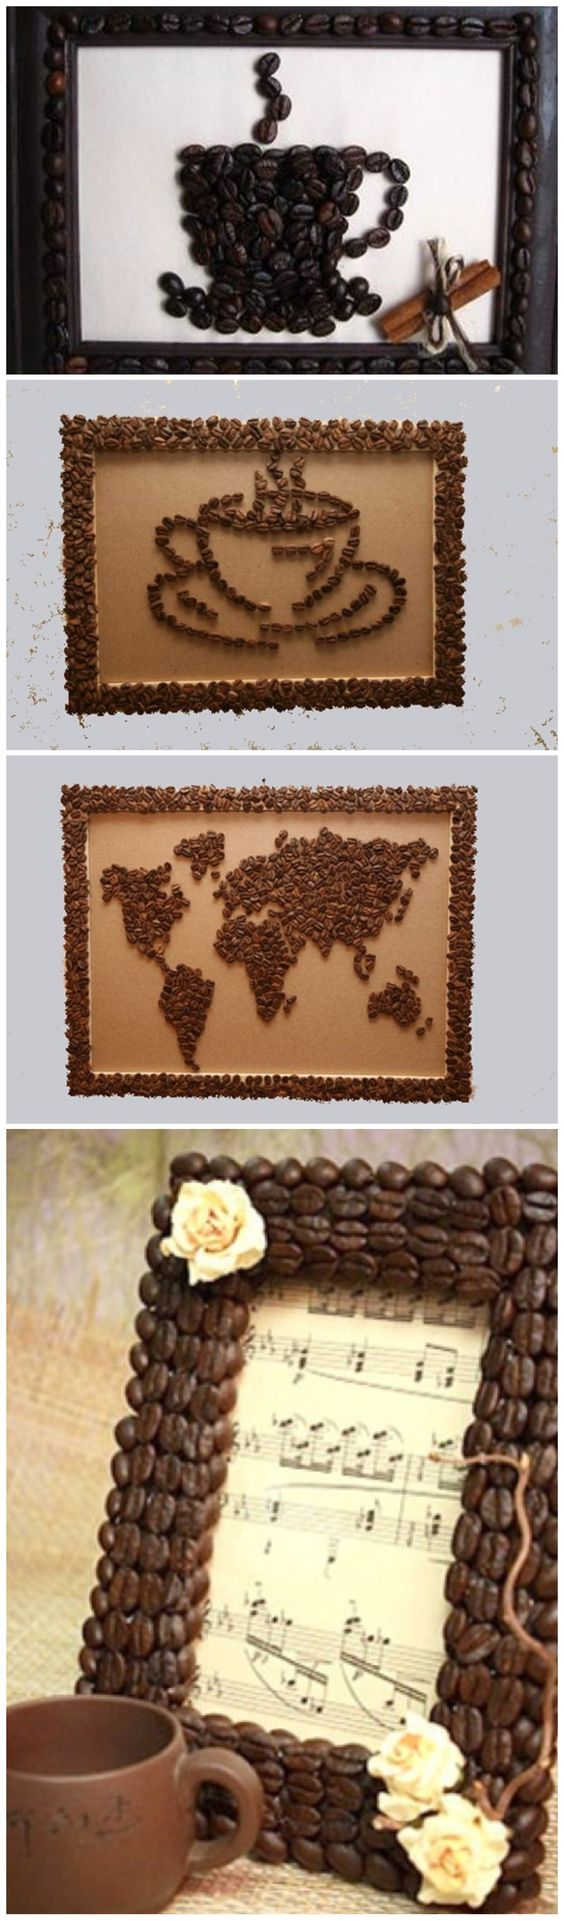 Create art out of coffee beans as fundraiser for Colombia volunteer trip.